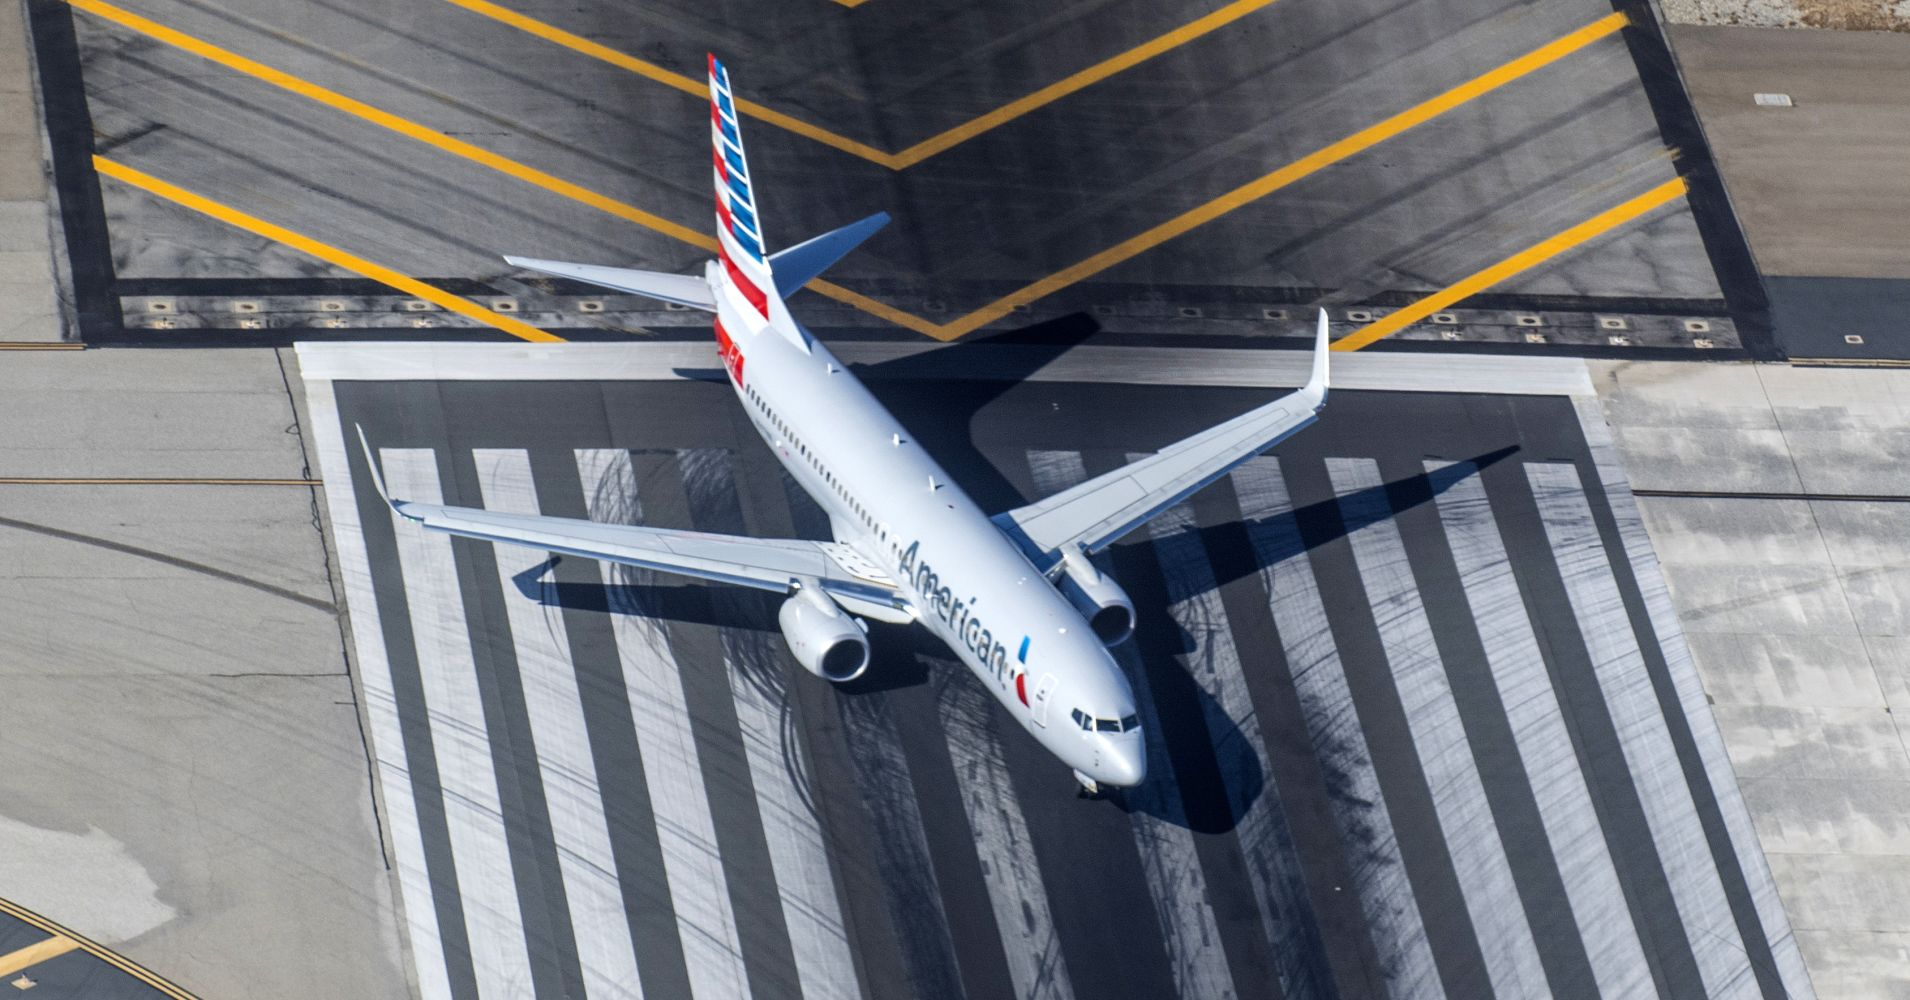 Fetus Found On An American Airlines Plane Medical